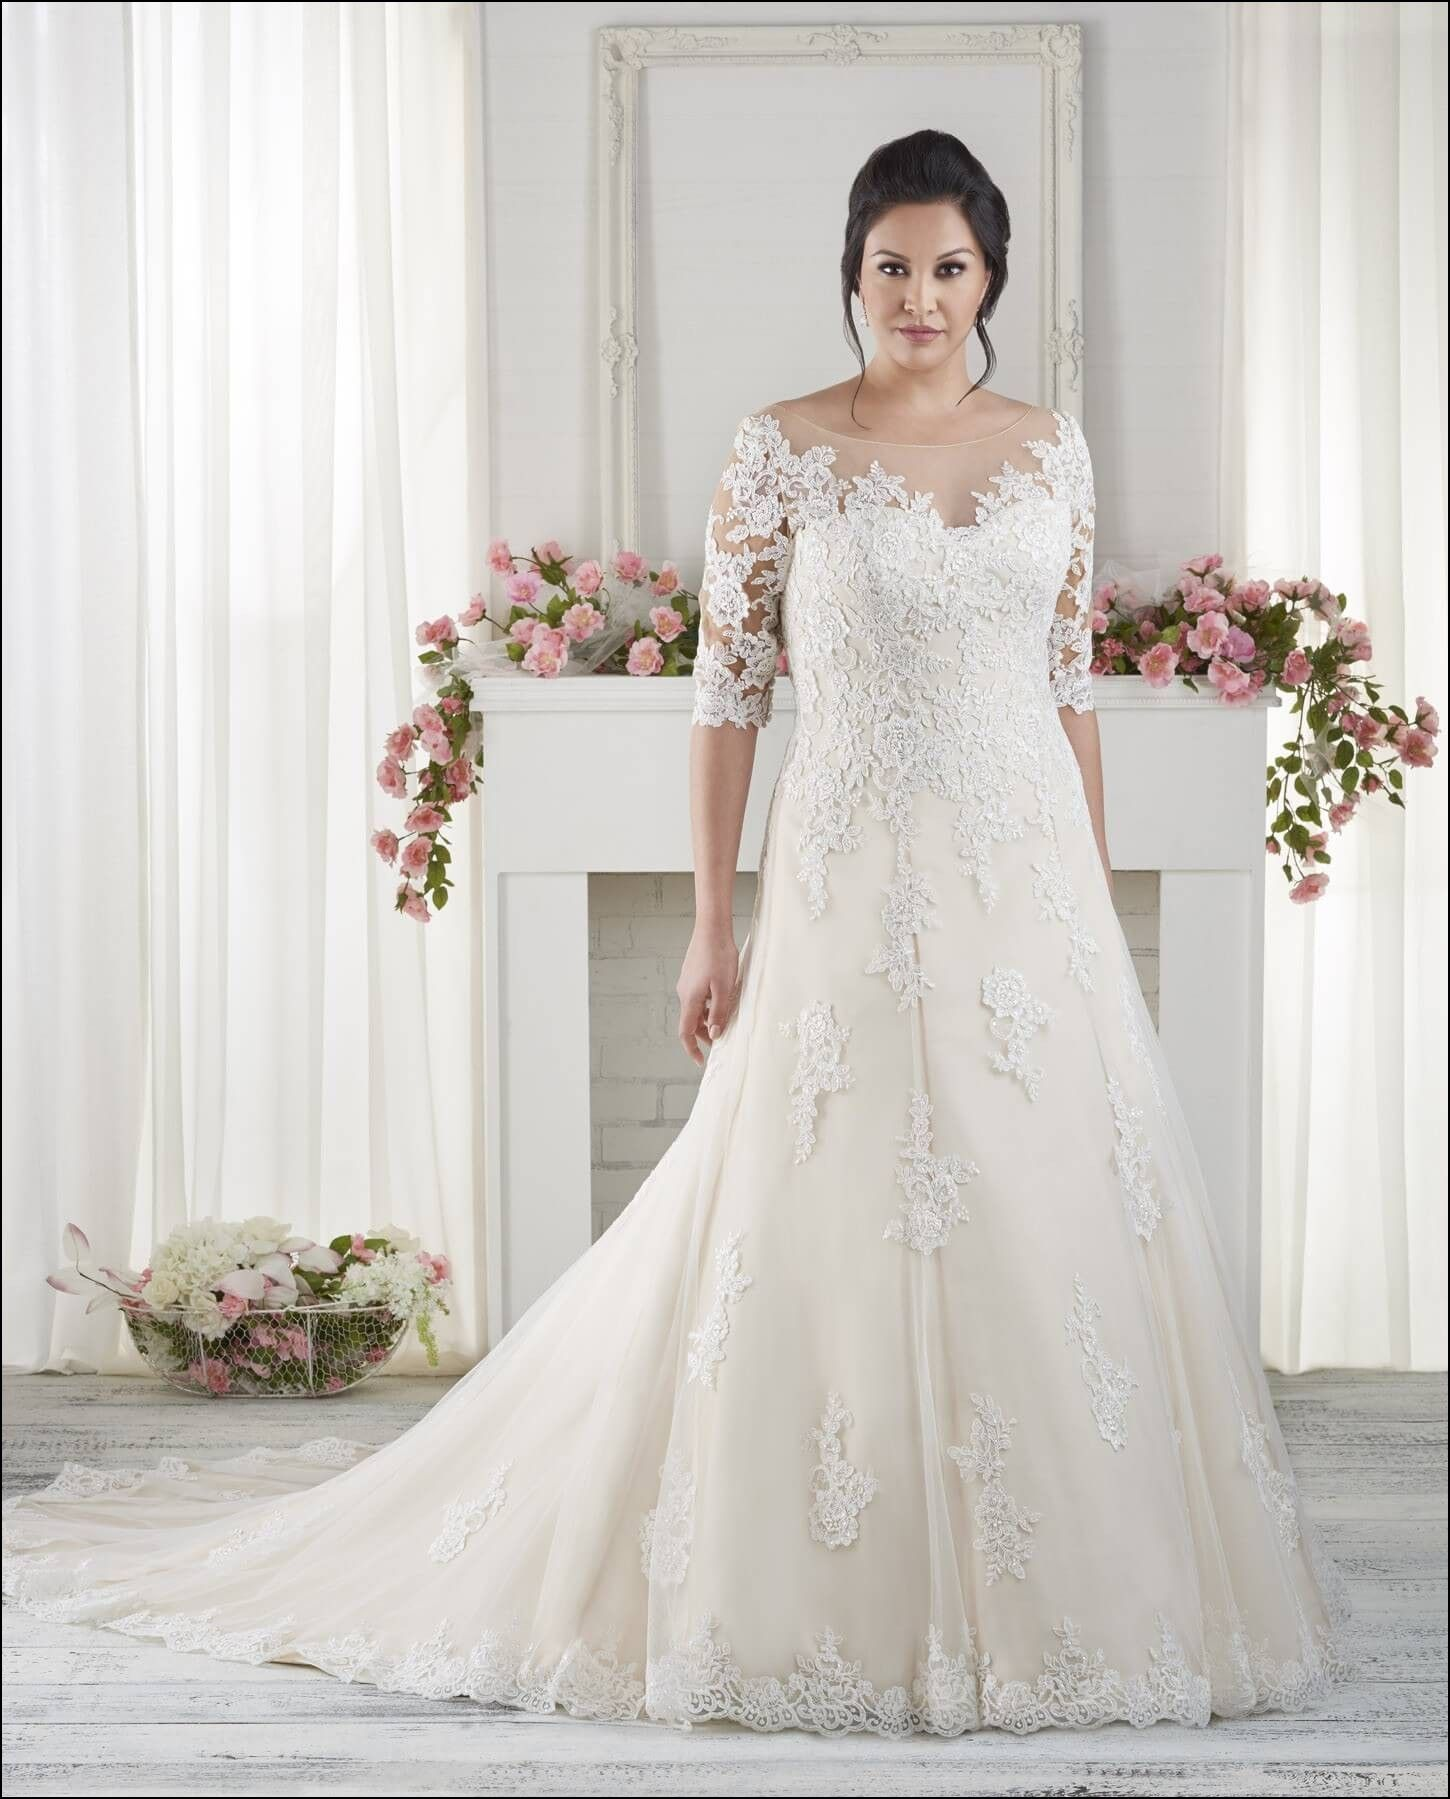 Wedding Gown for Chubby Bride | B o d a | Pinterest | Gowns and Weddings